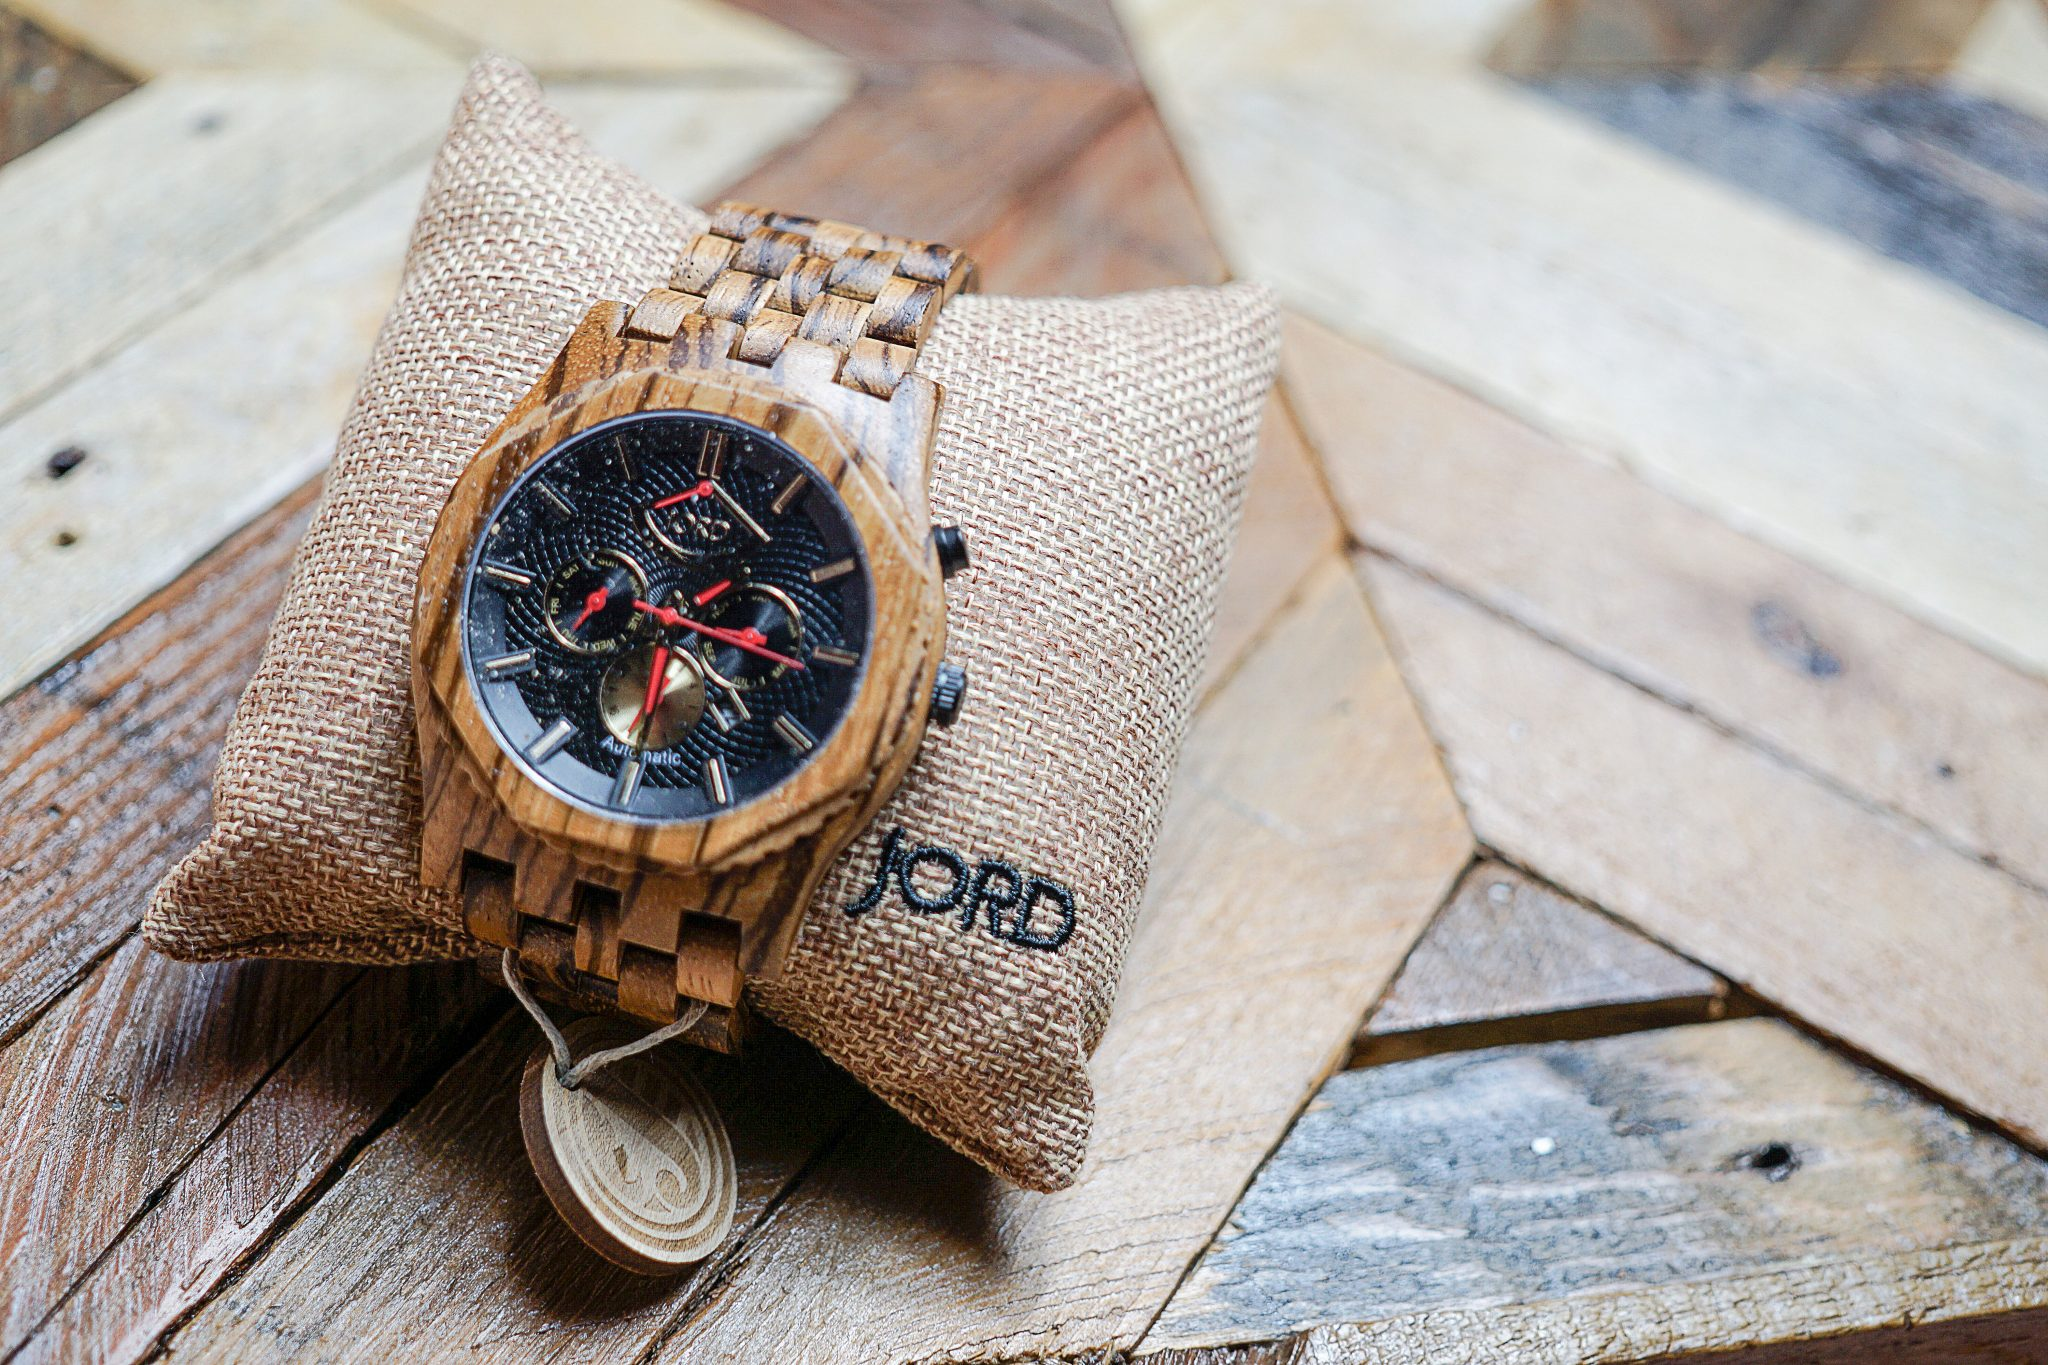 The Last Minute Gift Guide: Wood Watches